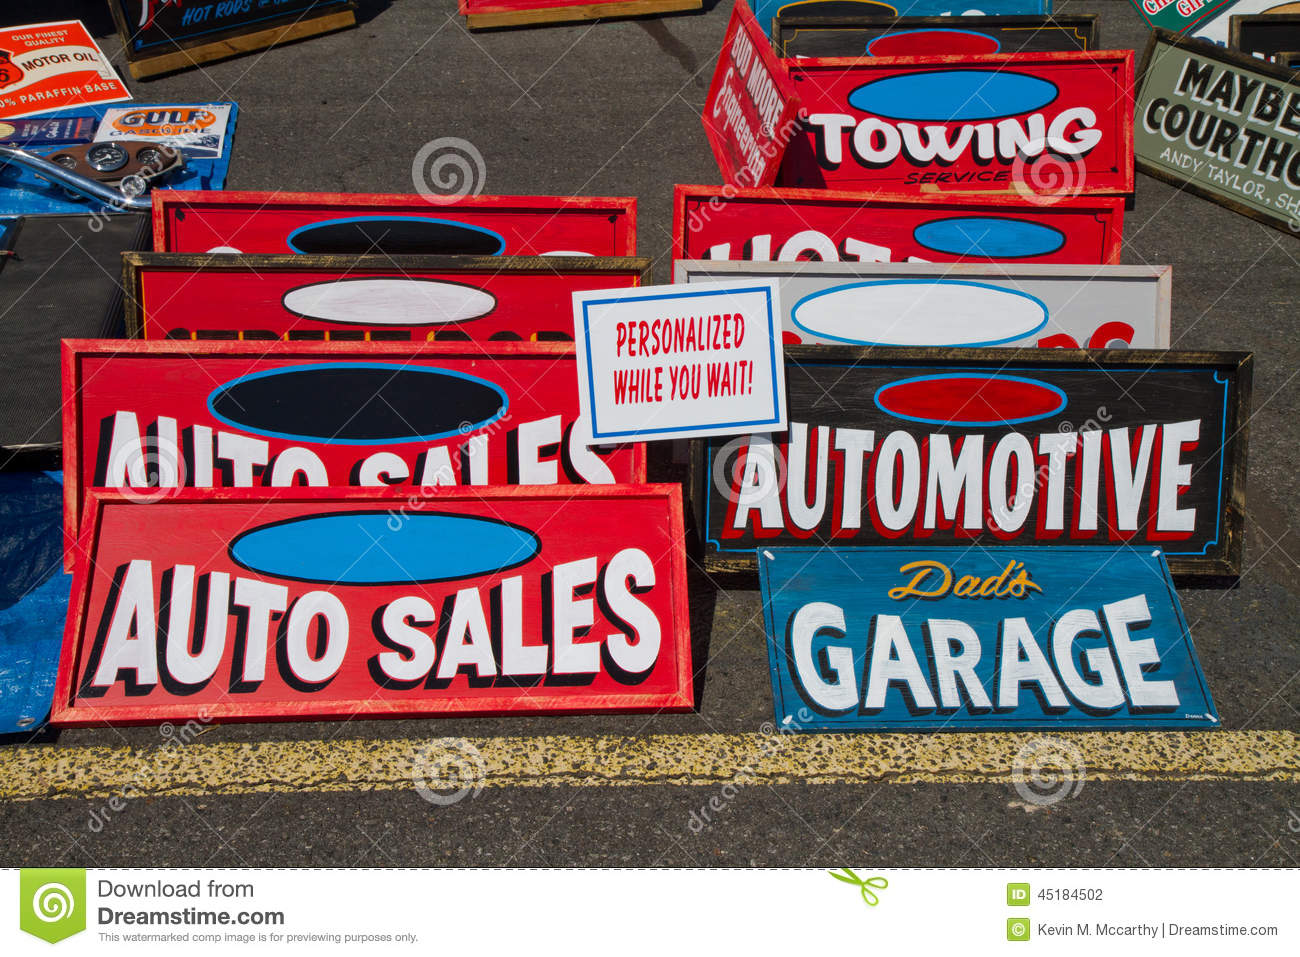 Classic automotive signs editorial photography for Auto fair at charlotte motor speedway